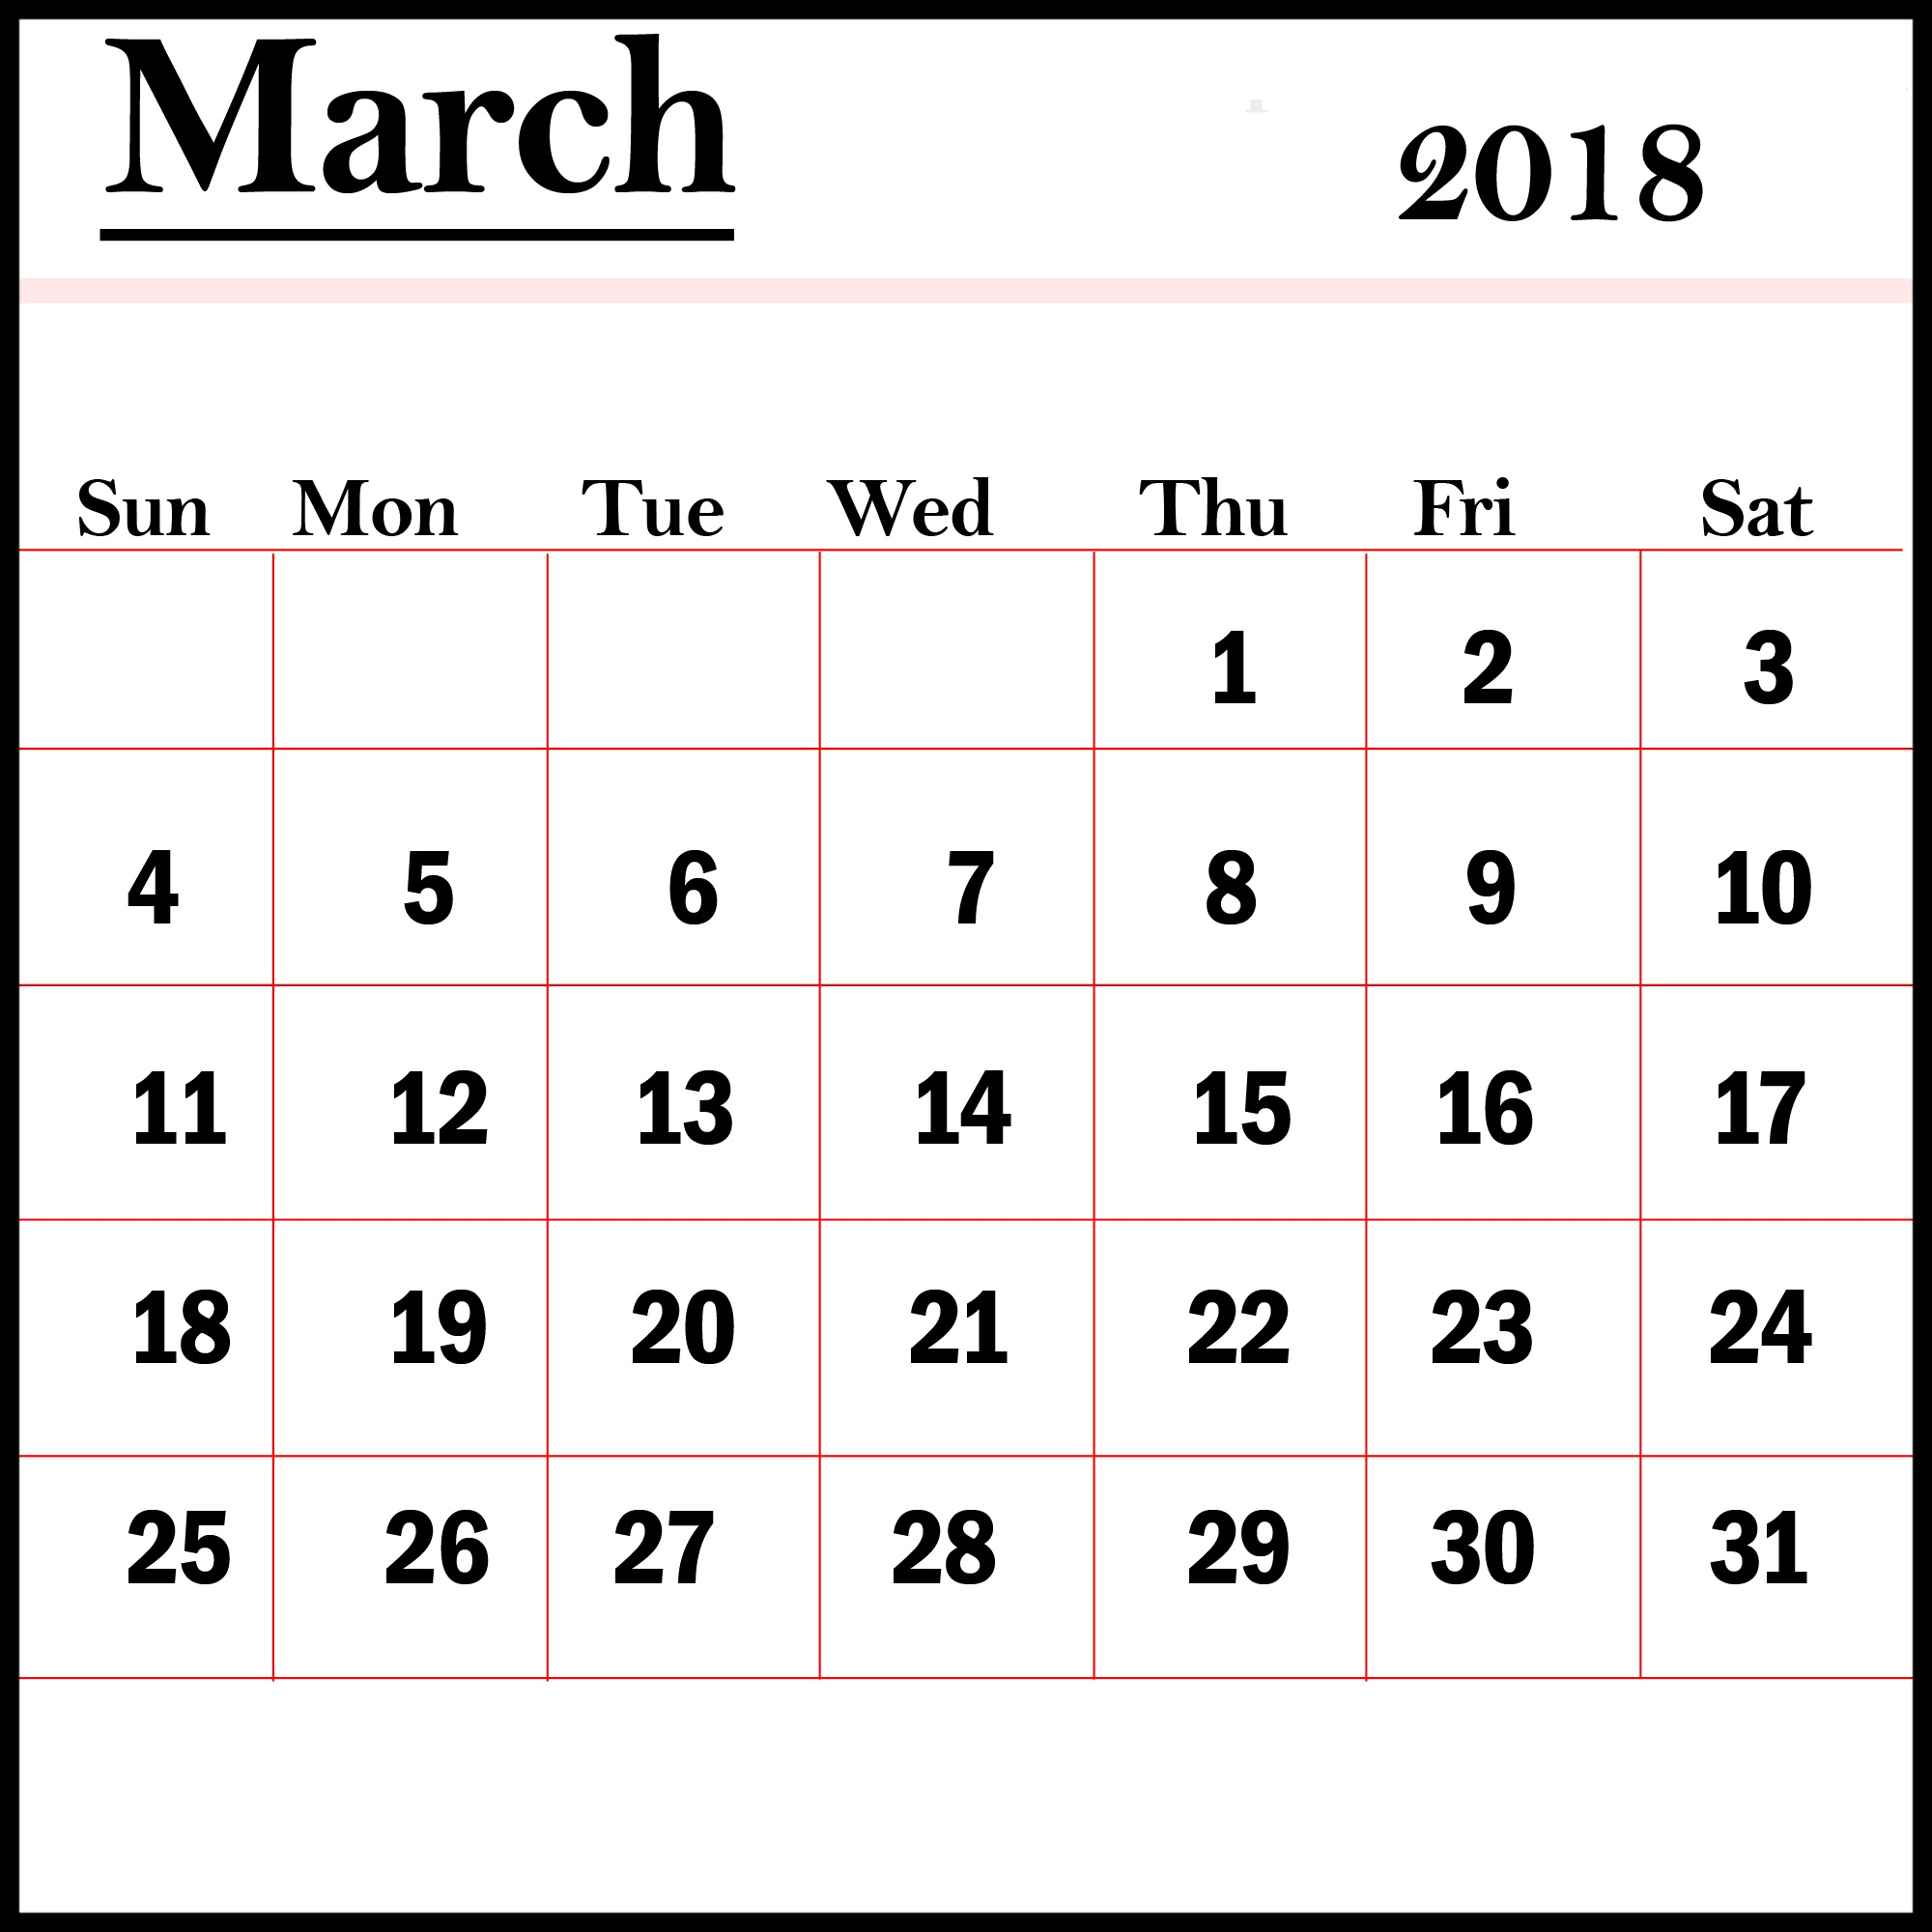 March 2018 Printable Calendar Latest HD Pictures Images 2000x2000